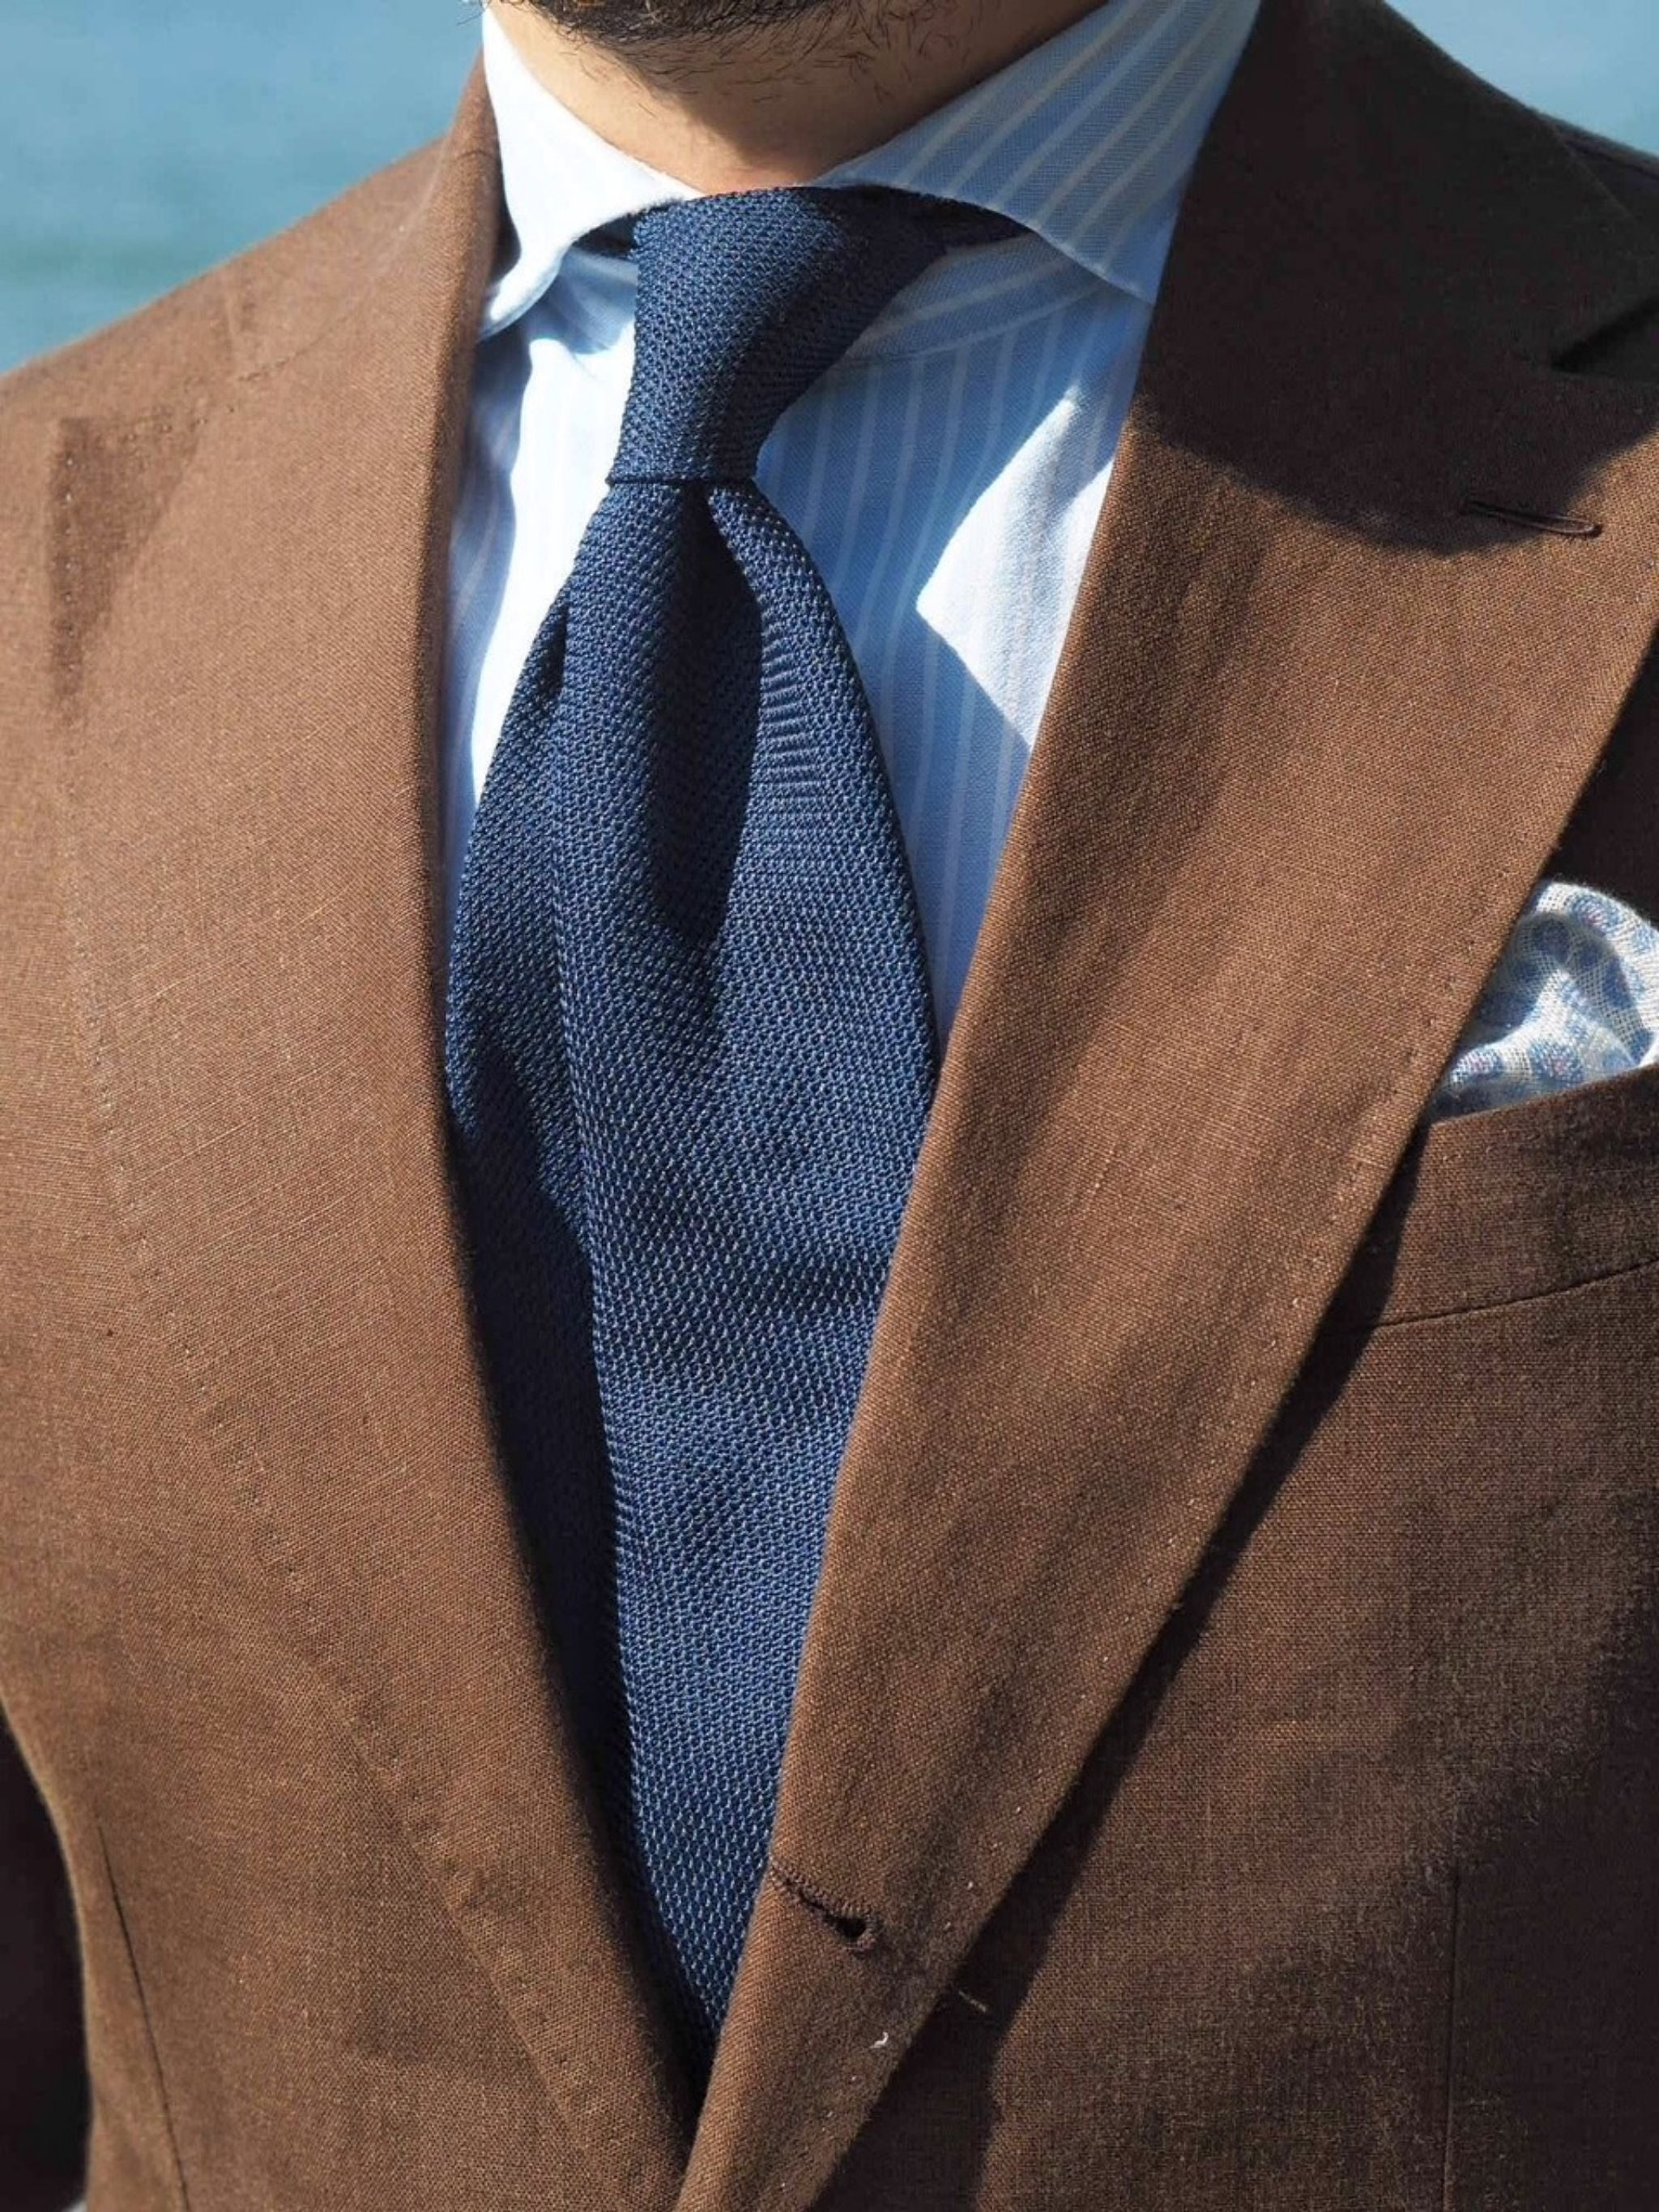 brown linen suit with navy grenadine tie details